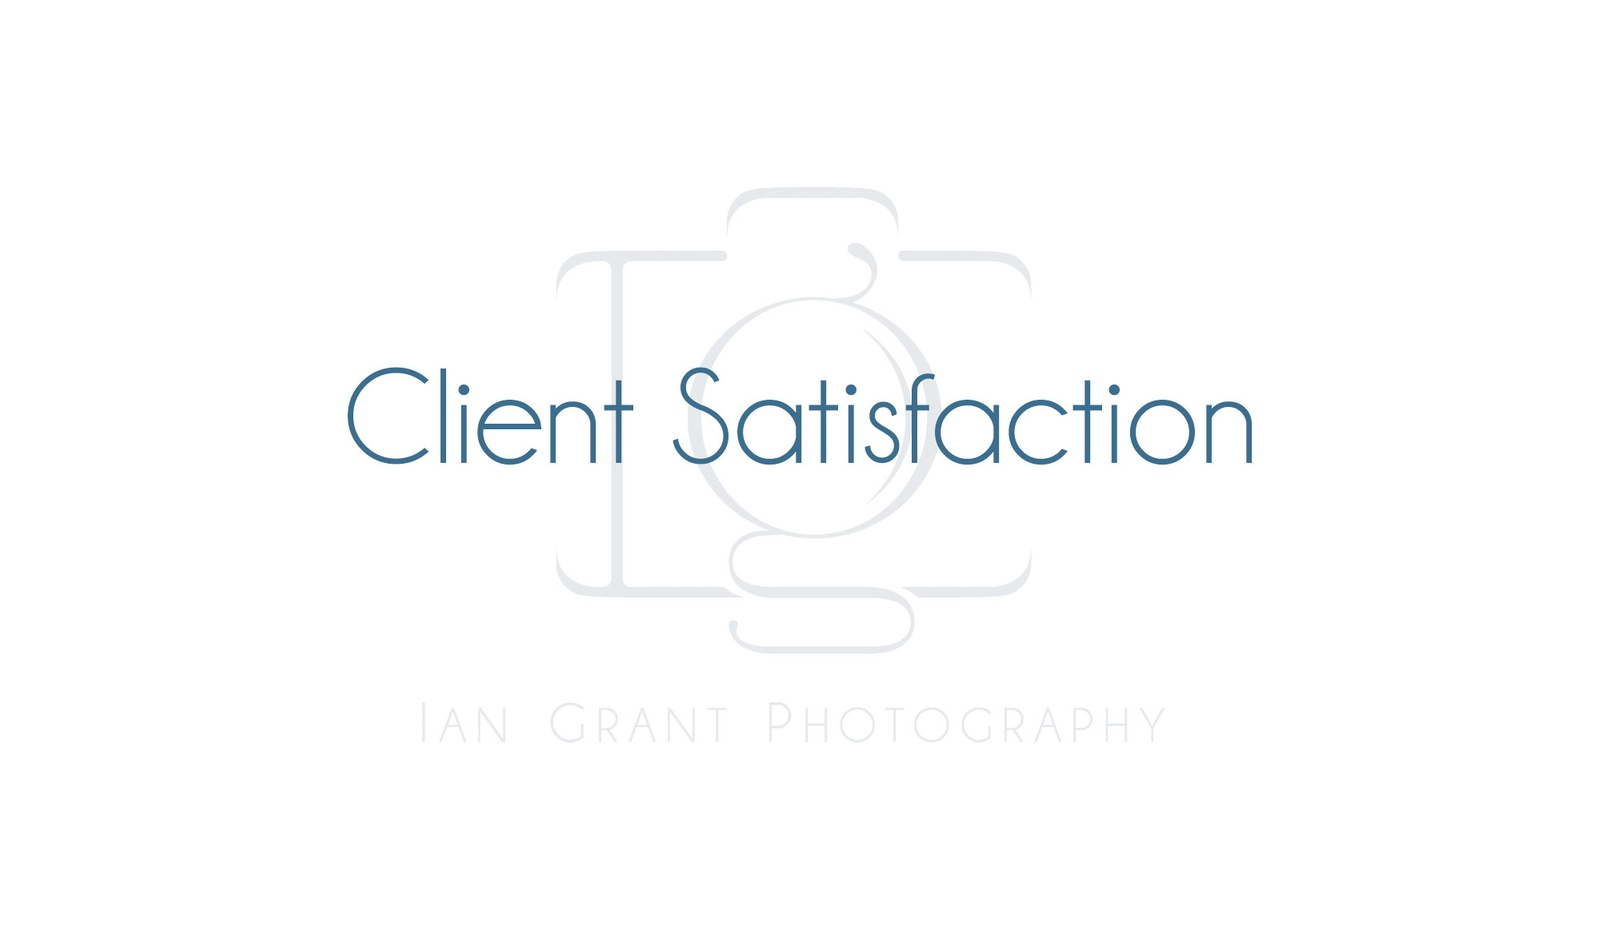 Client Satisfaction - Commercial Photography Toronto by Ian Grant